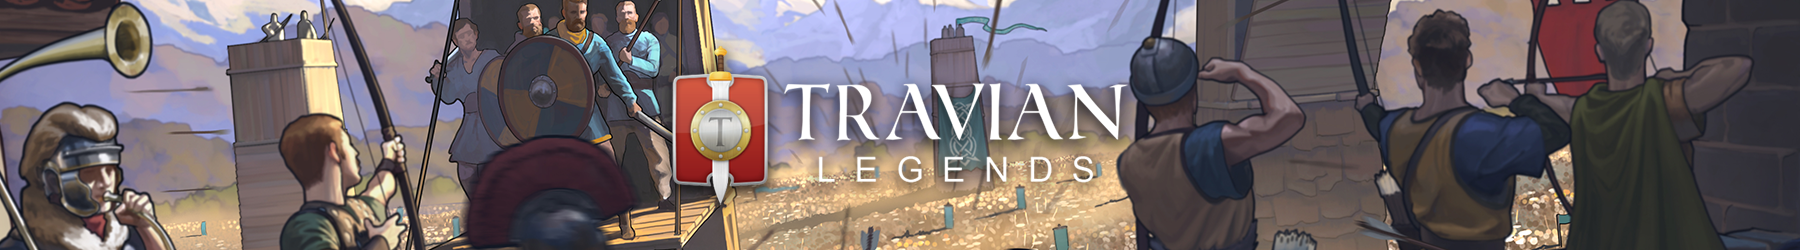 Travian: Legends Blog